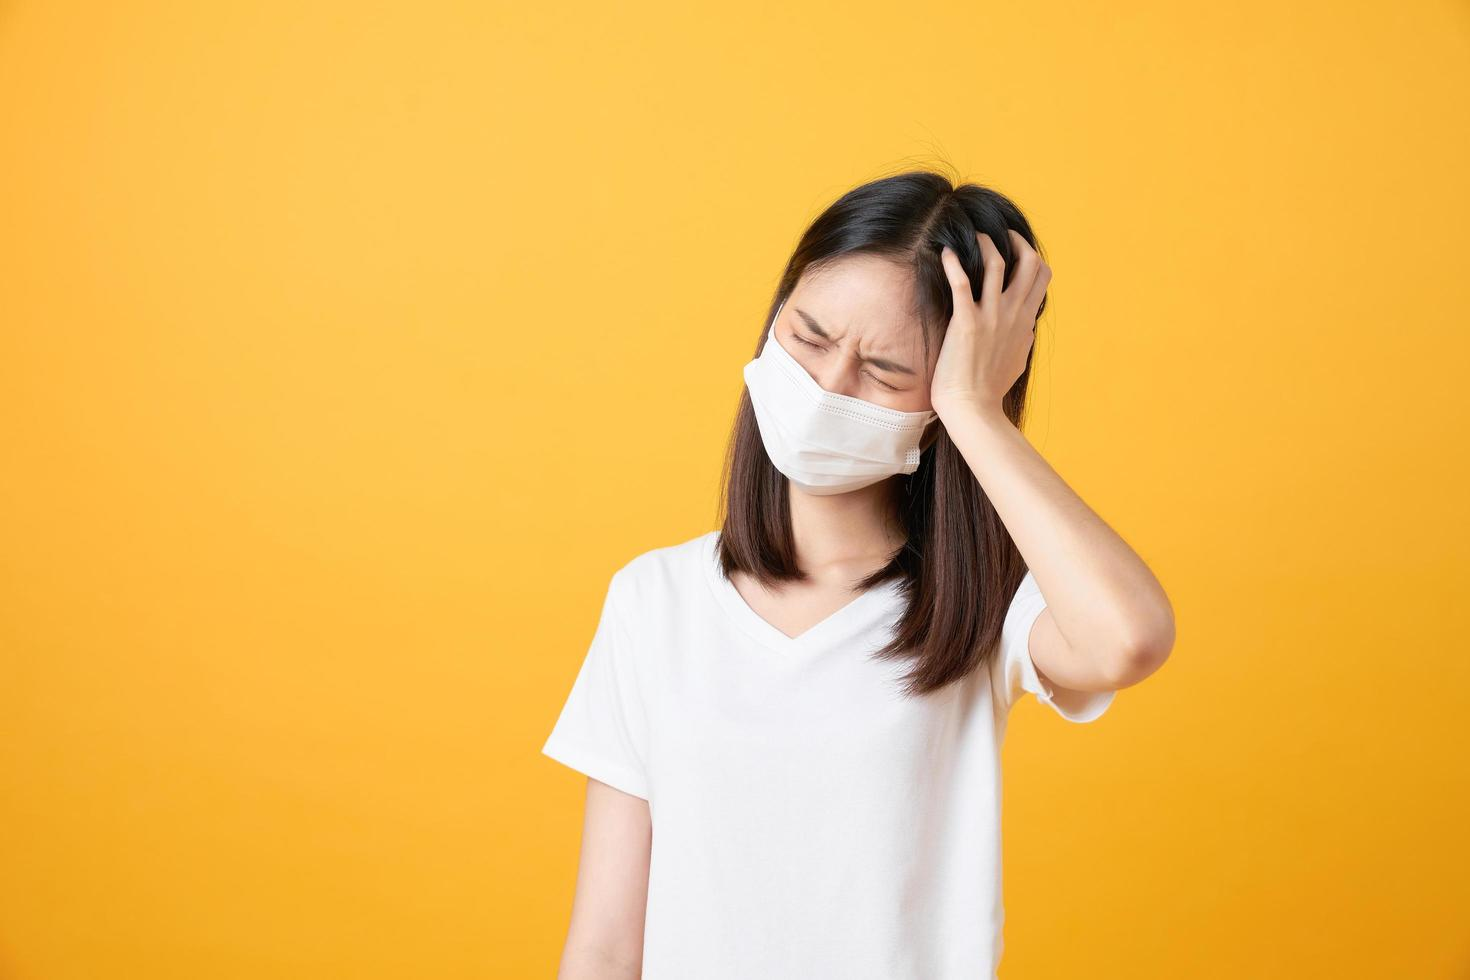 Woman wearing mask while holding head photo